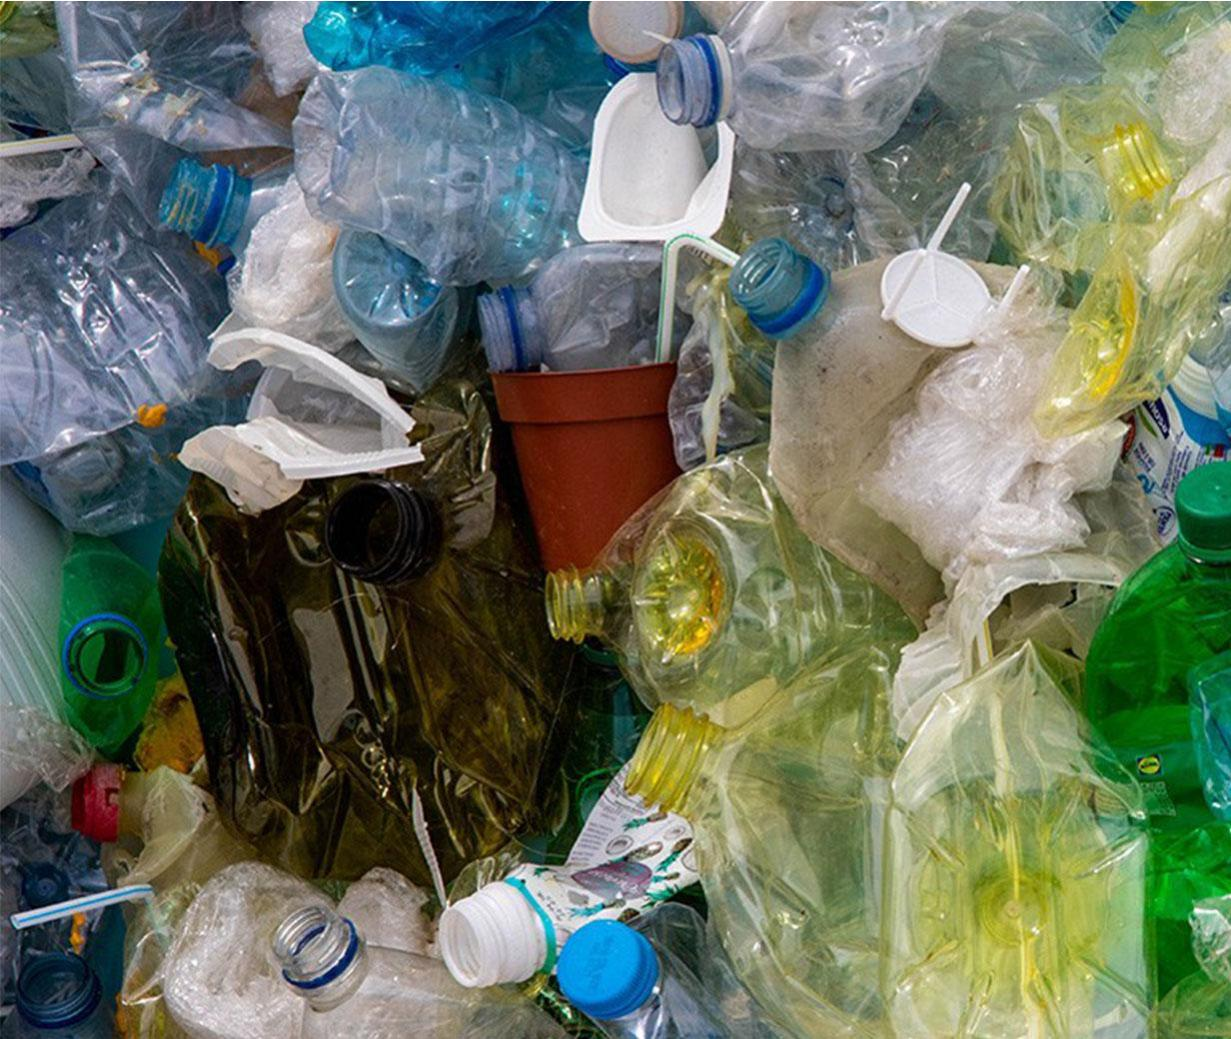 COVID19 – How Big Plastic exploited fear in a crisis